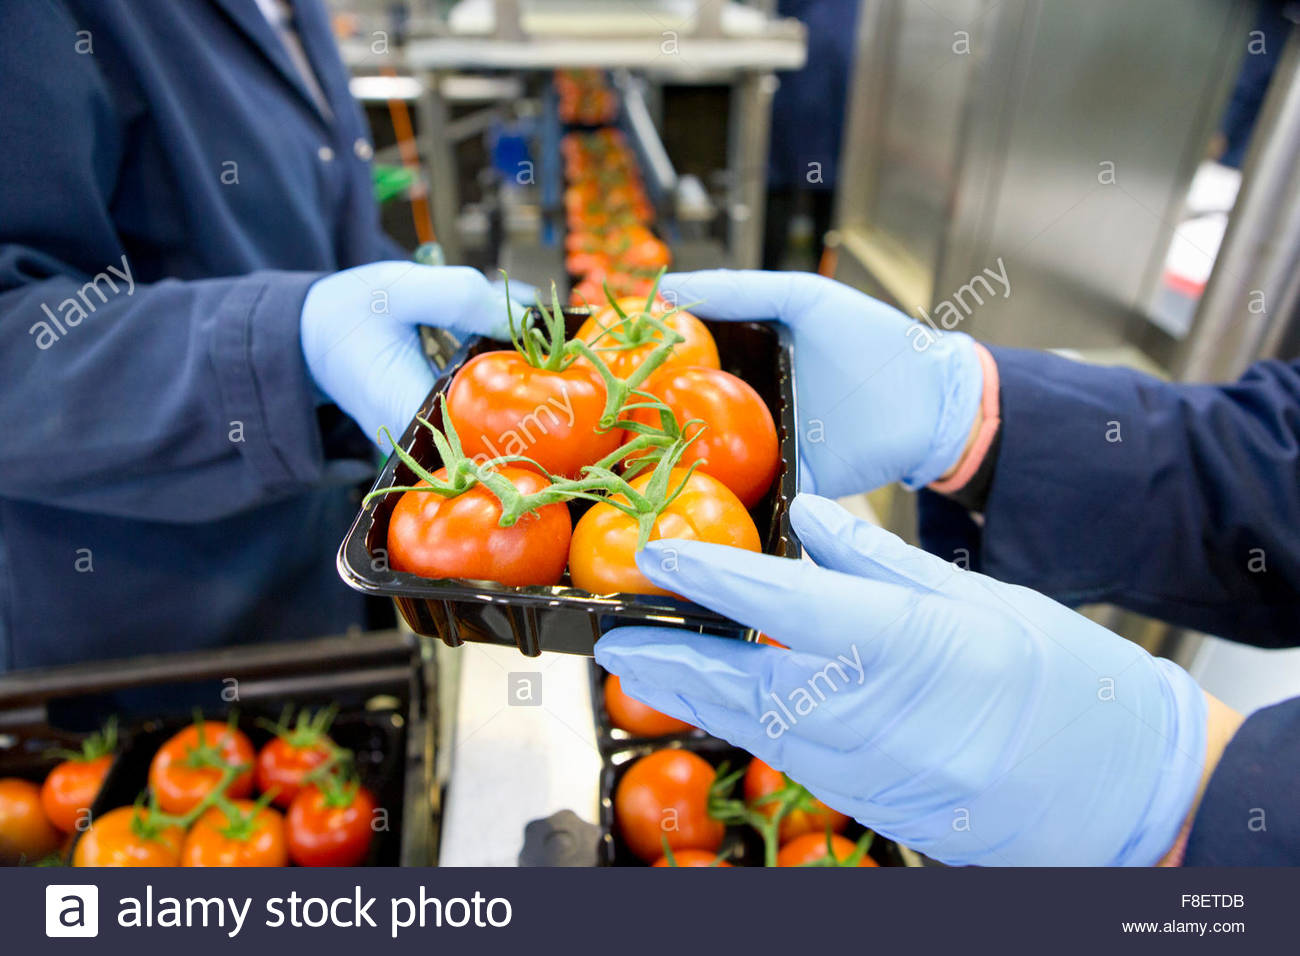 Workers packing ripe red vine tomatoes on production line in food processing plant - Stock Image